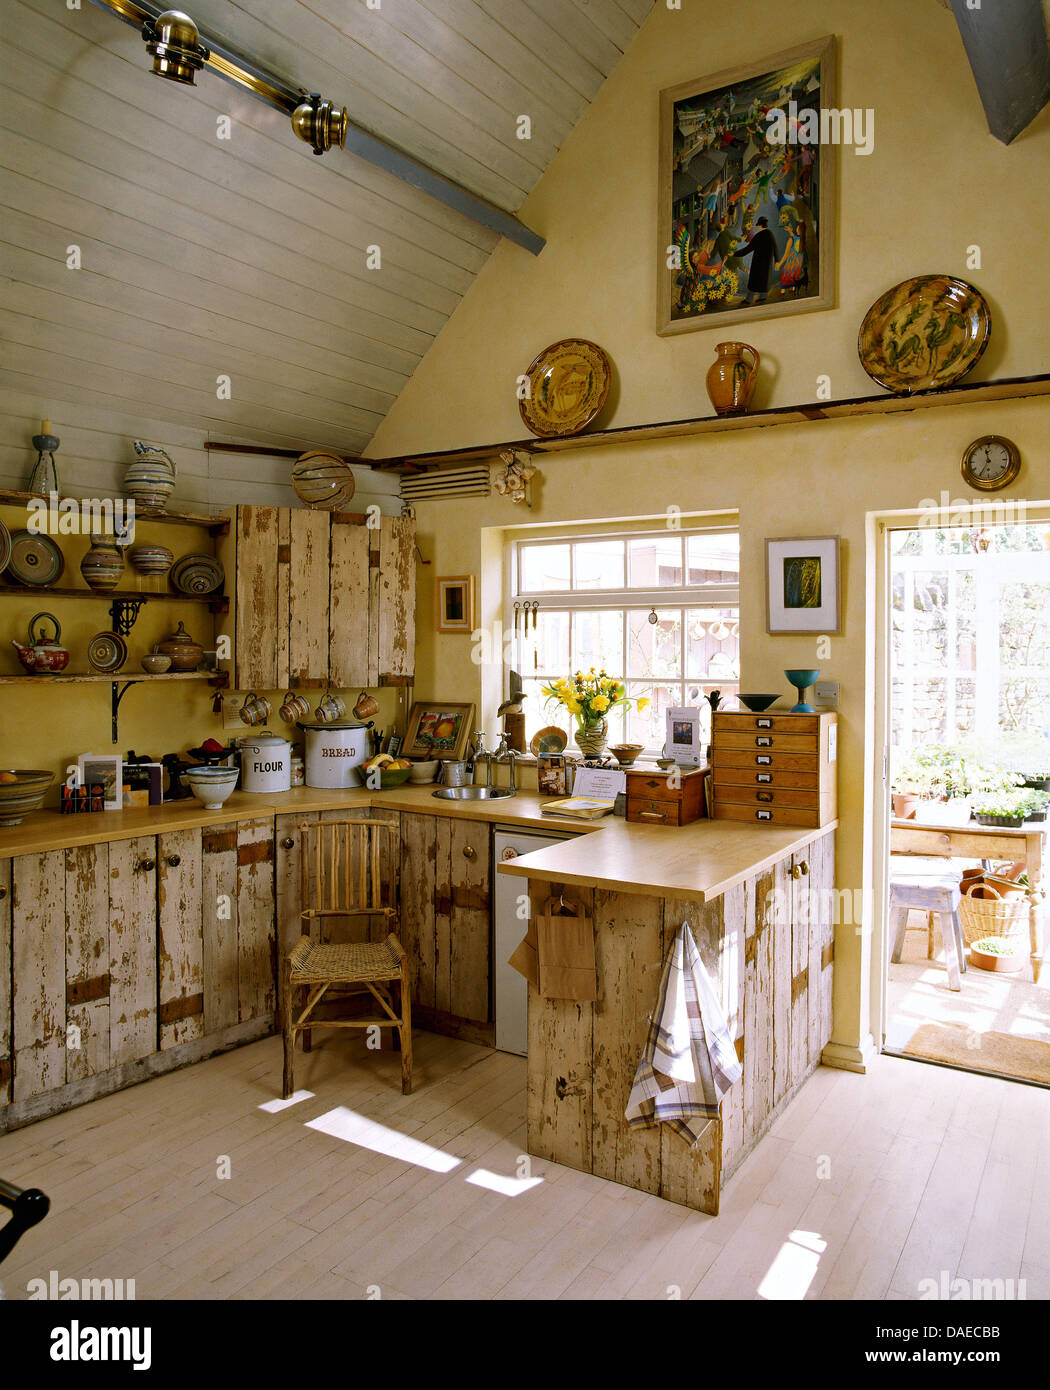 Rustic Country Kitchen With Salvaged Wood Cupboards A